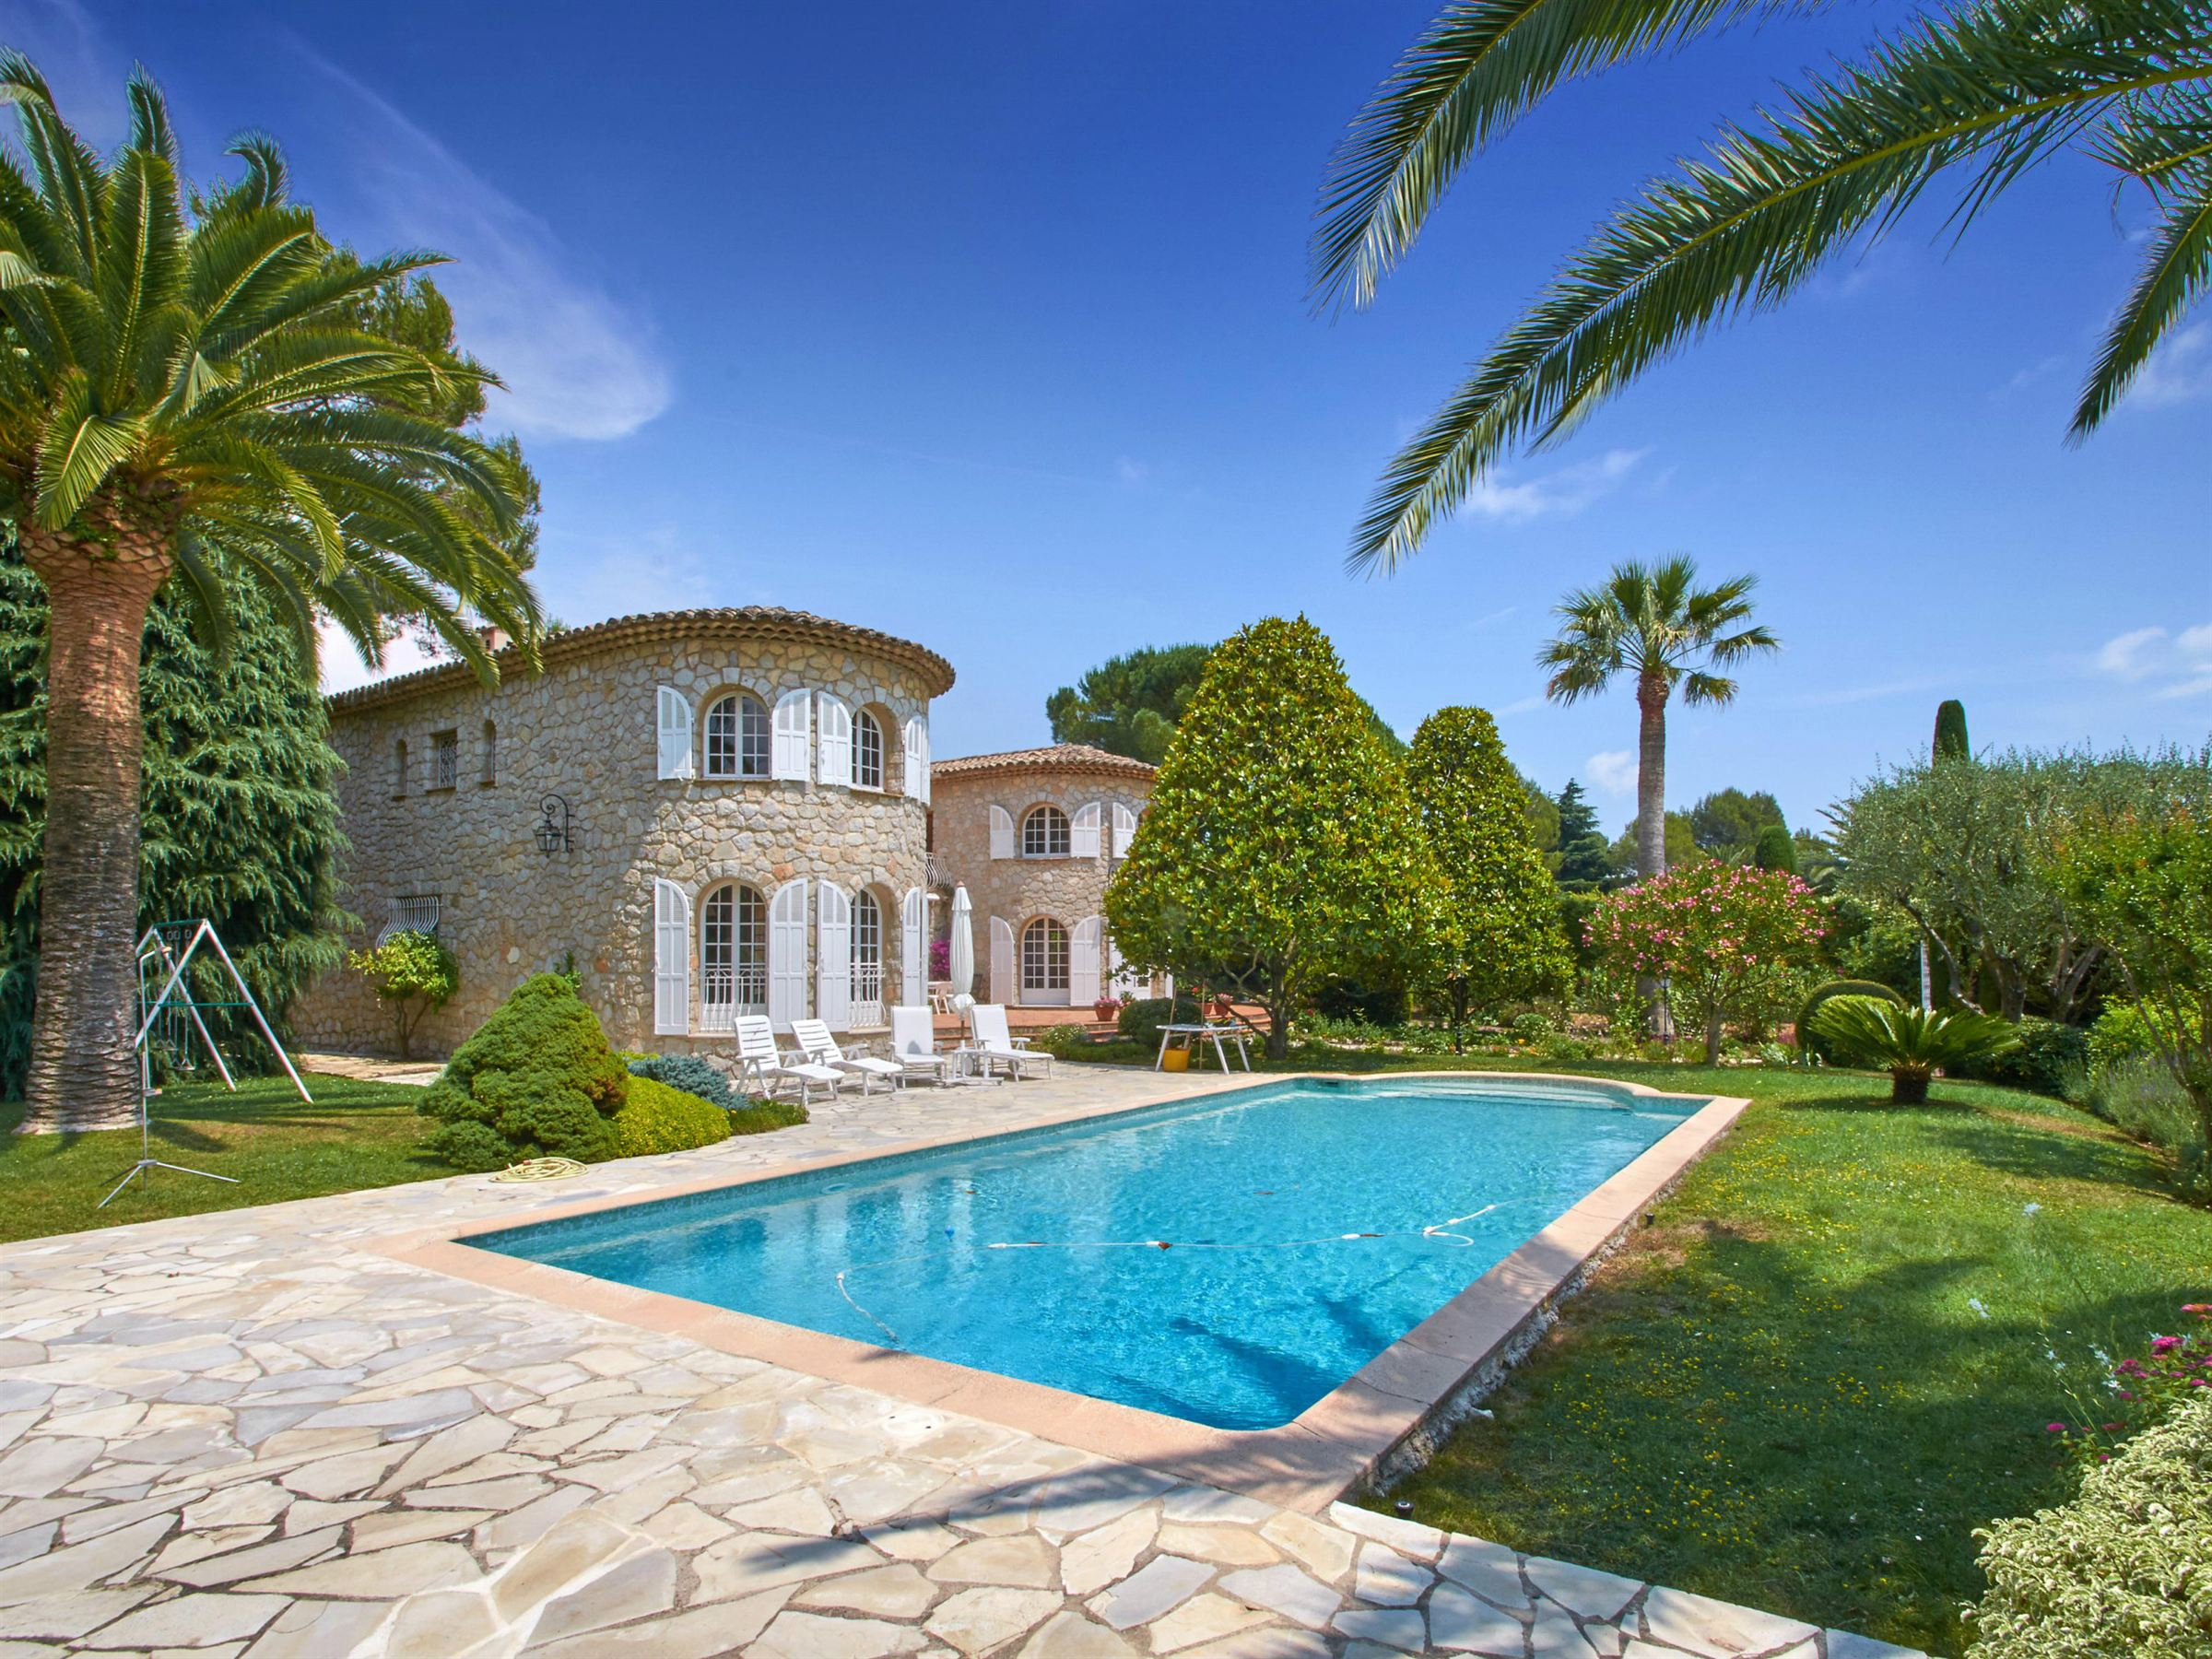 Single Family Home for Sale at Charming stone house in a private domain of Mougins Mougins, Provence-Alpes-Cote D'Azur, 06250 France